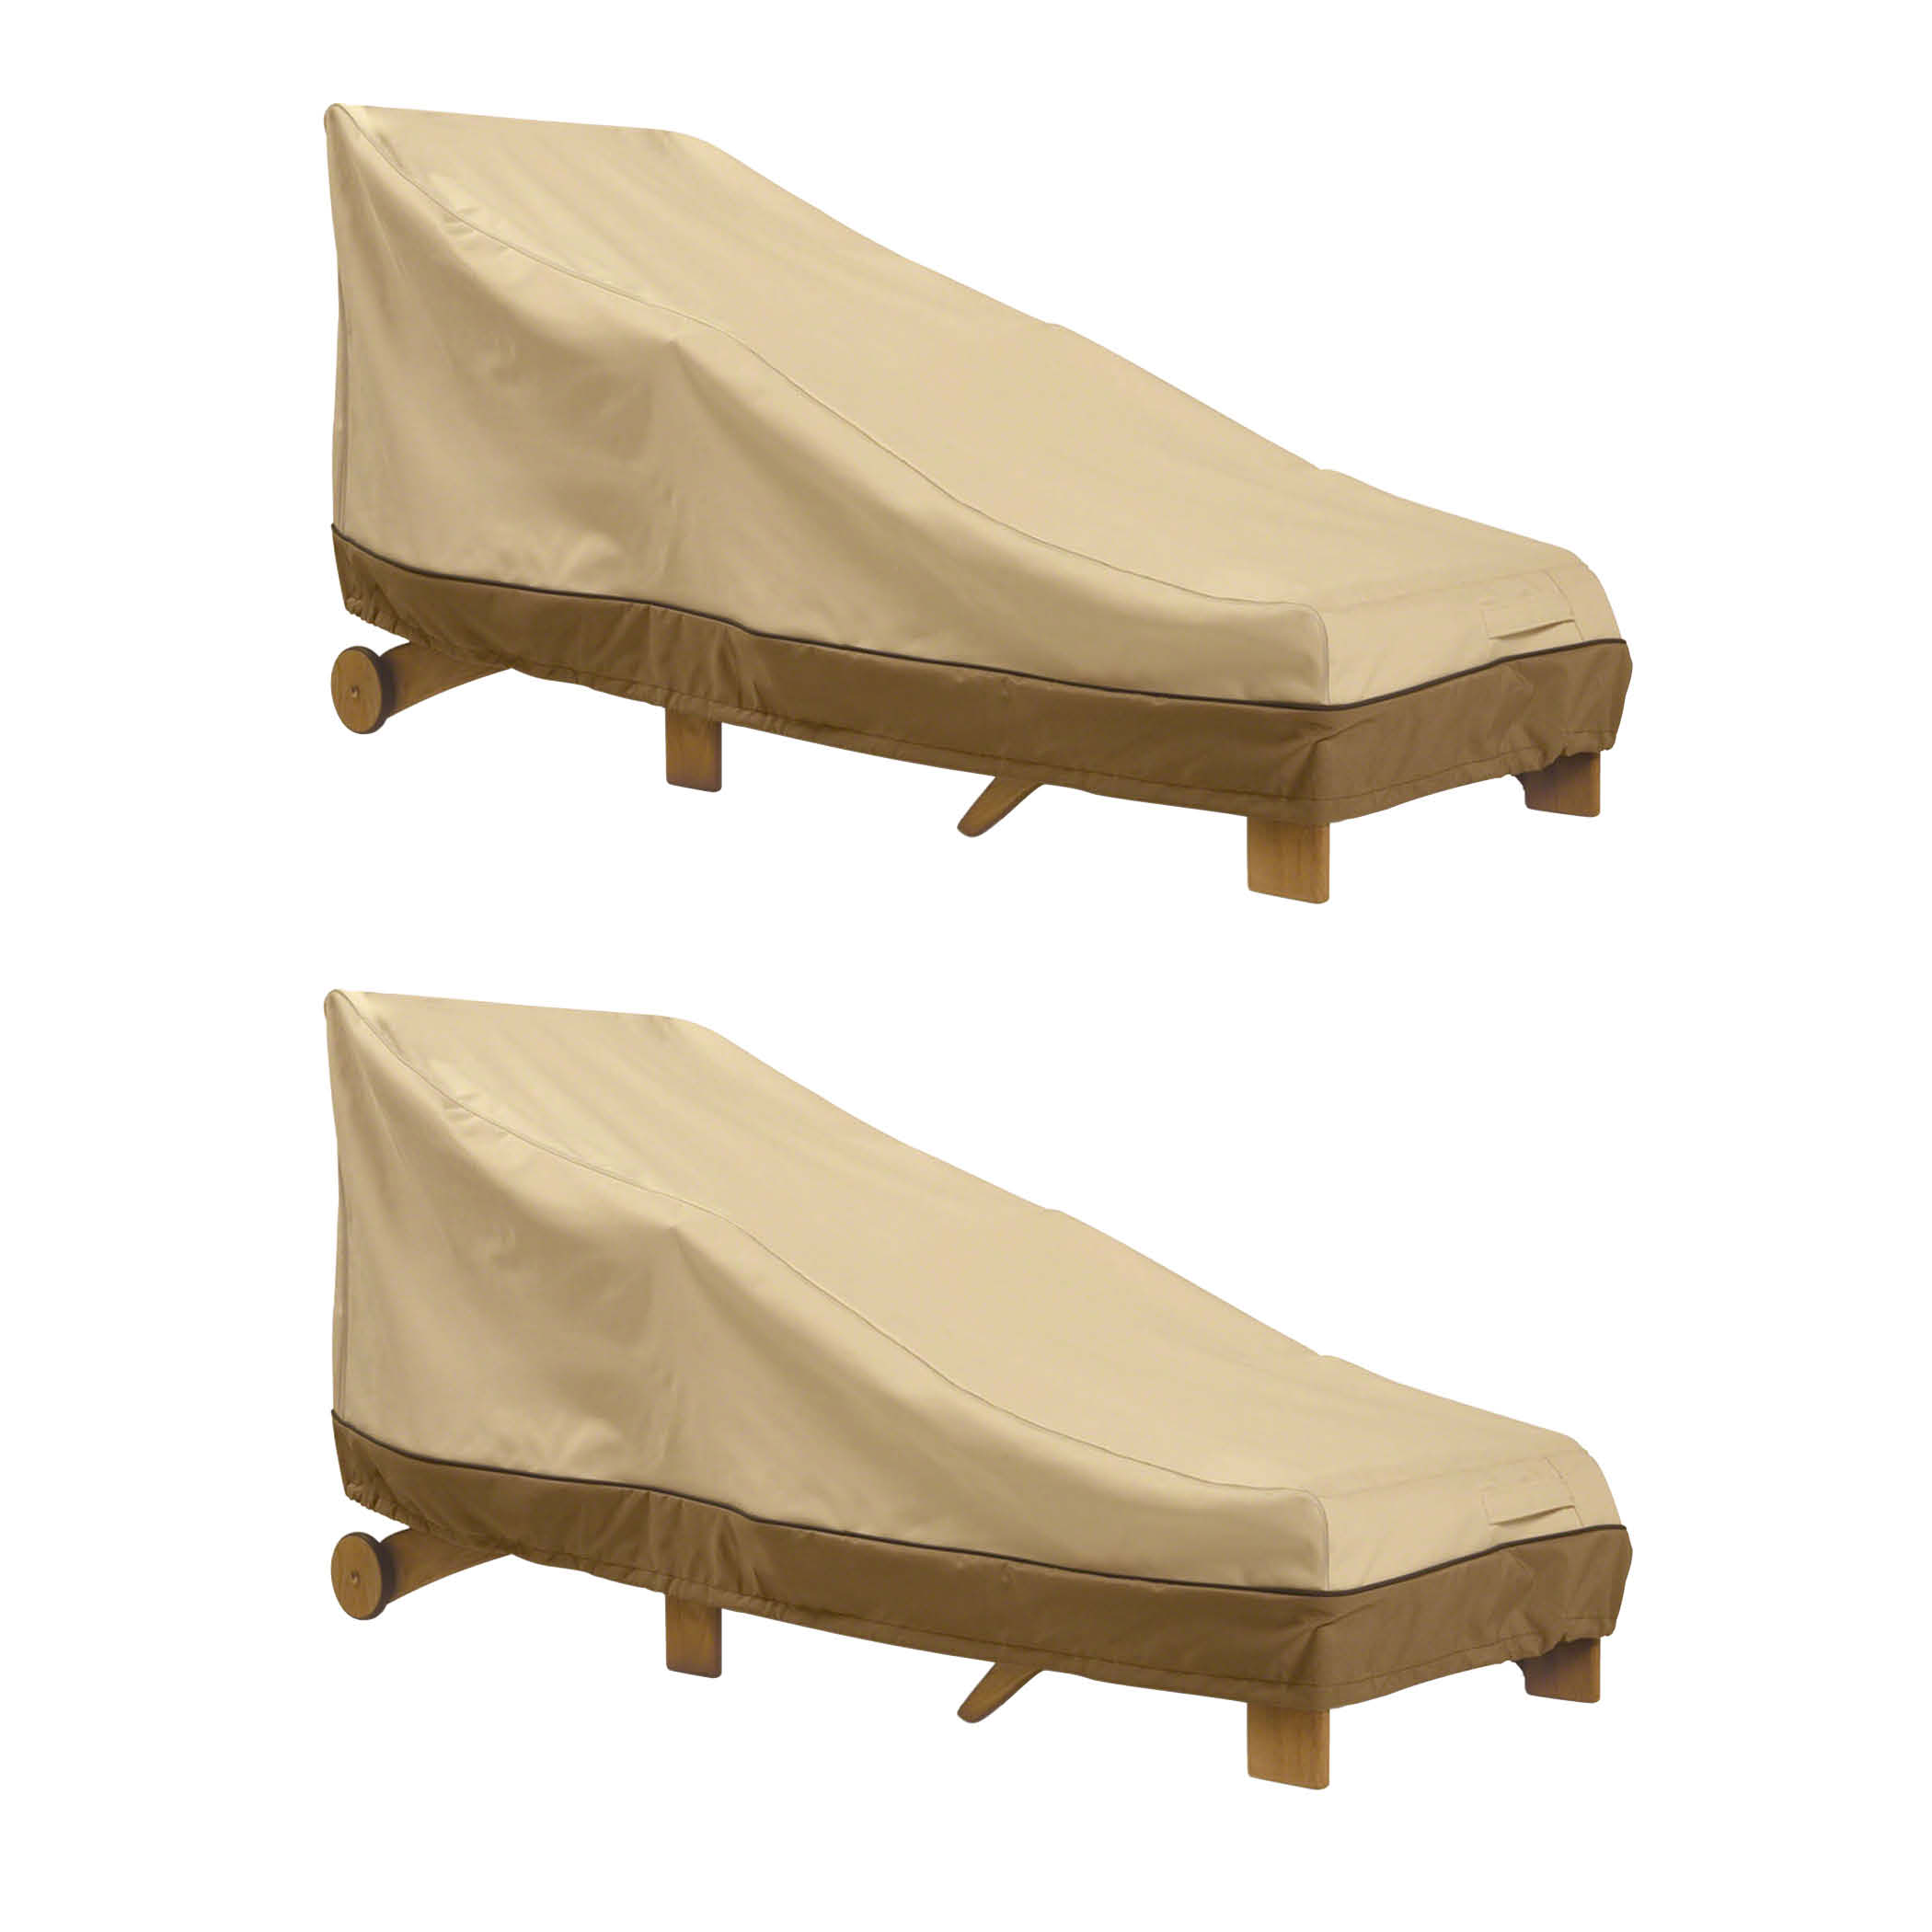 Classic Accessories Veranda Patio Chaise Lounge Cover - Durable and Water Resistant Patio Cover, Medium, 2-Pack